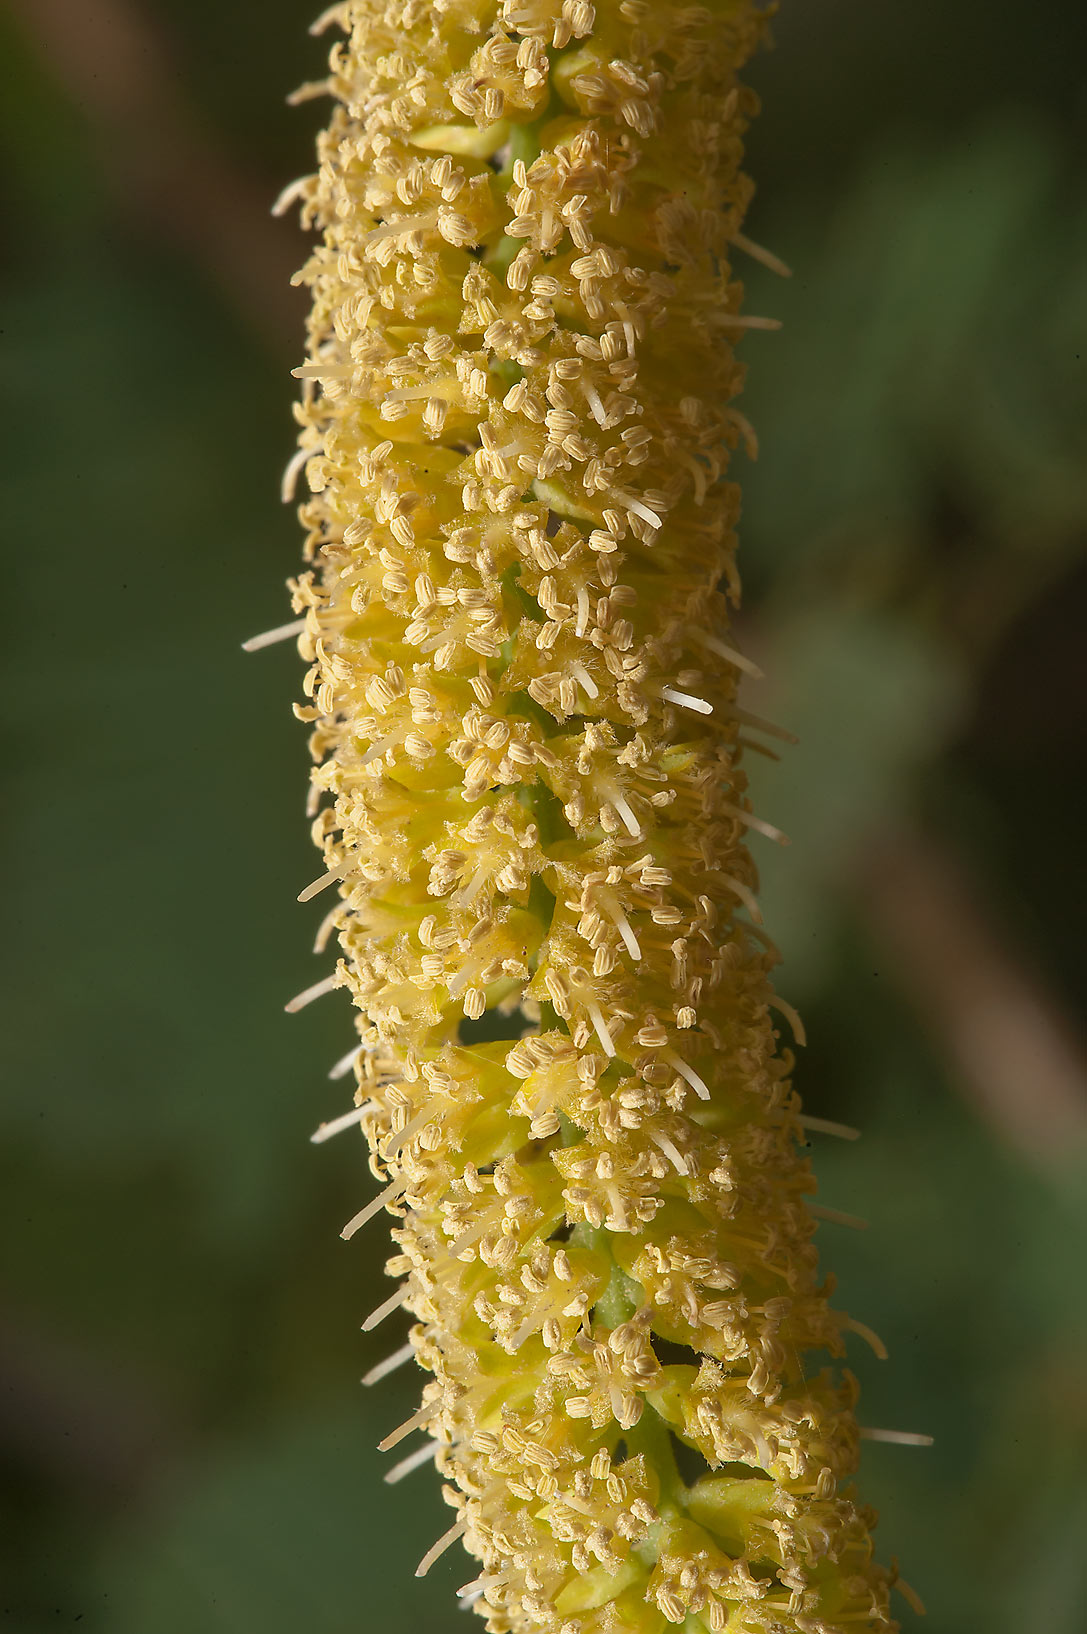 Flowers of mesquite (Prosopis juliflora, Prosopis...of Al Magdah farms in northern Qatar